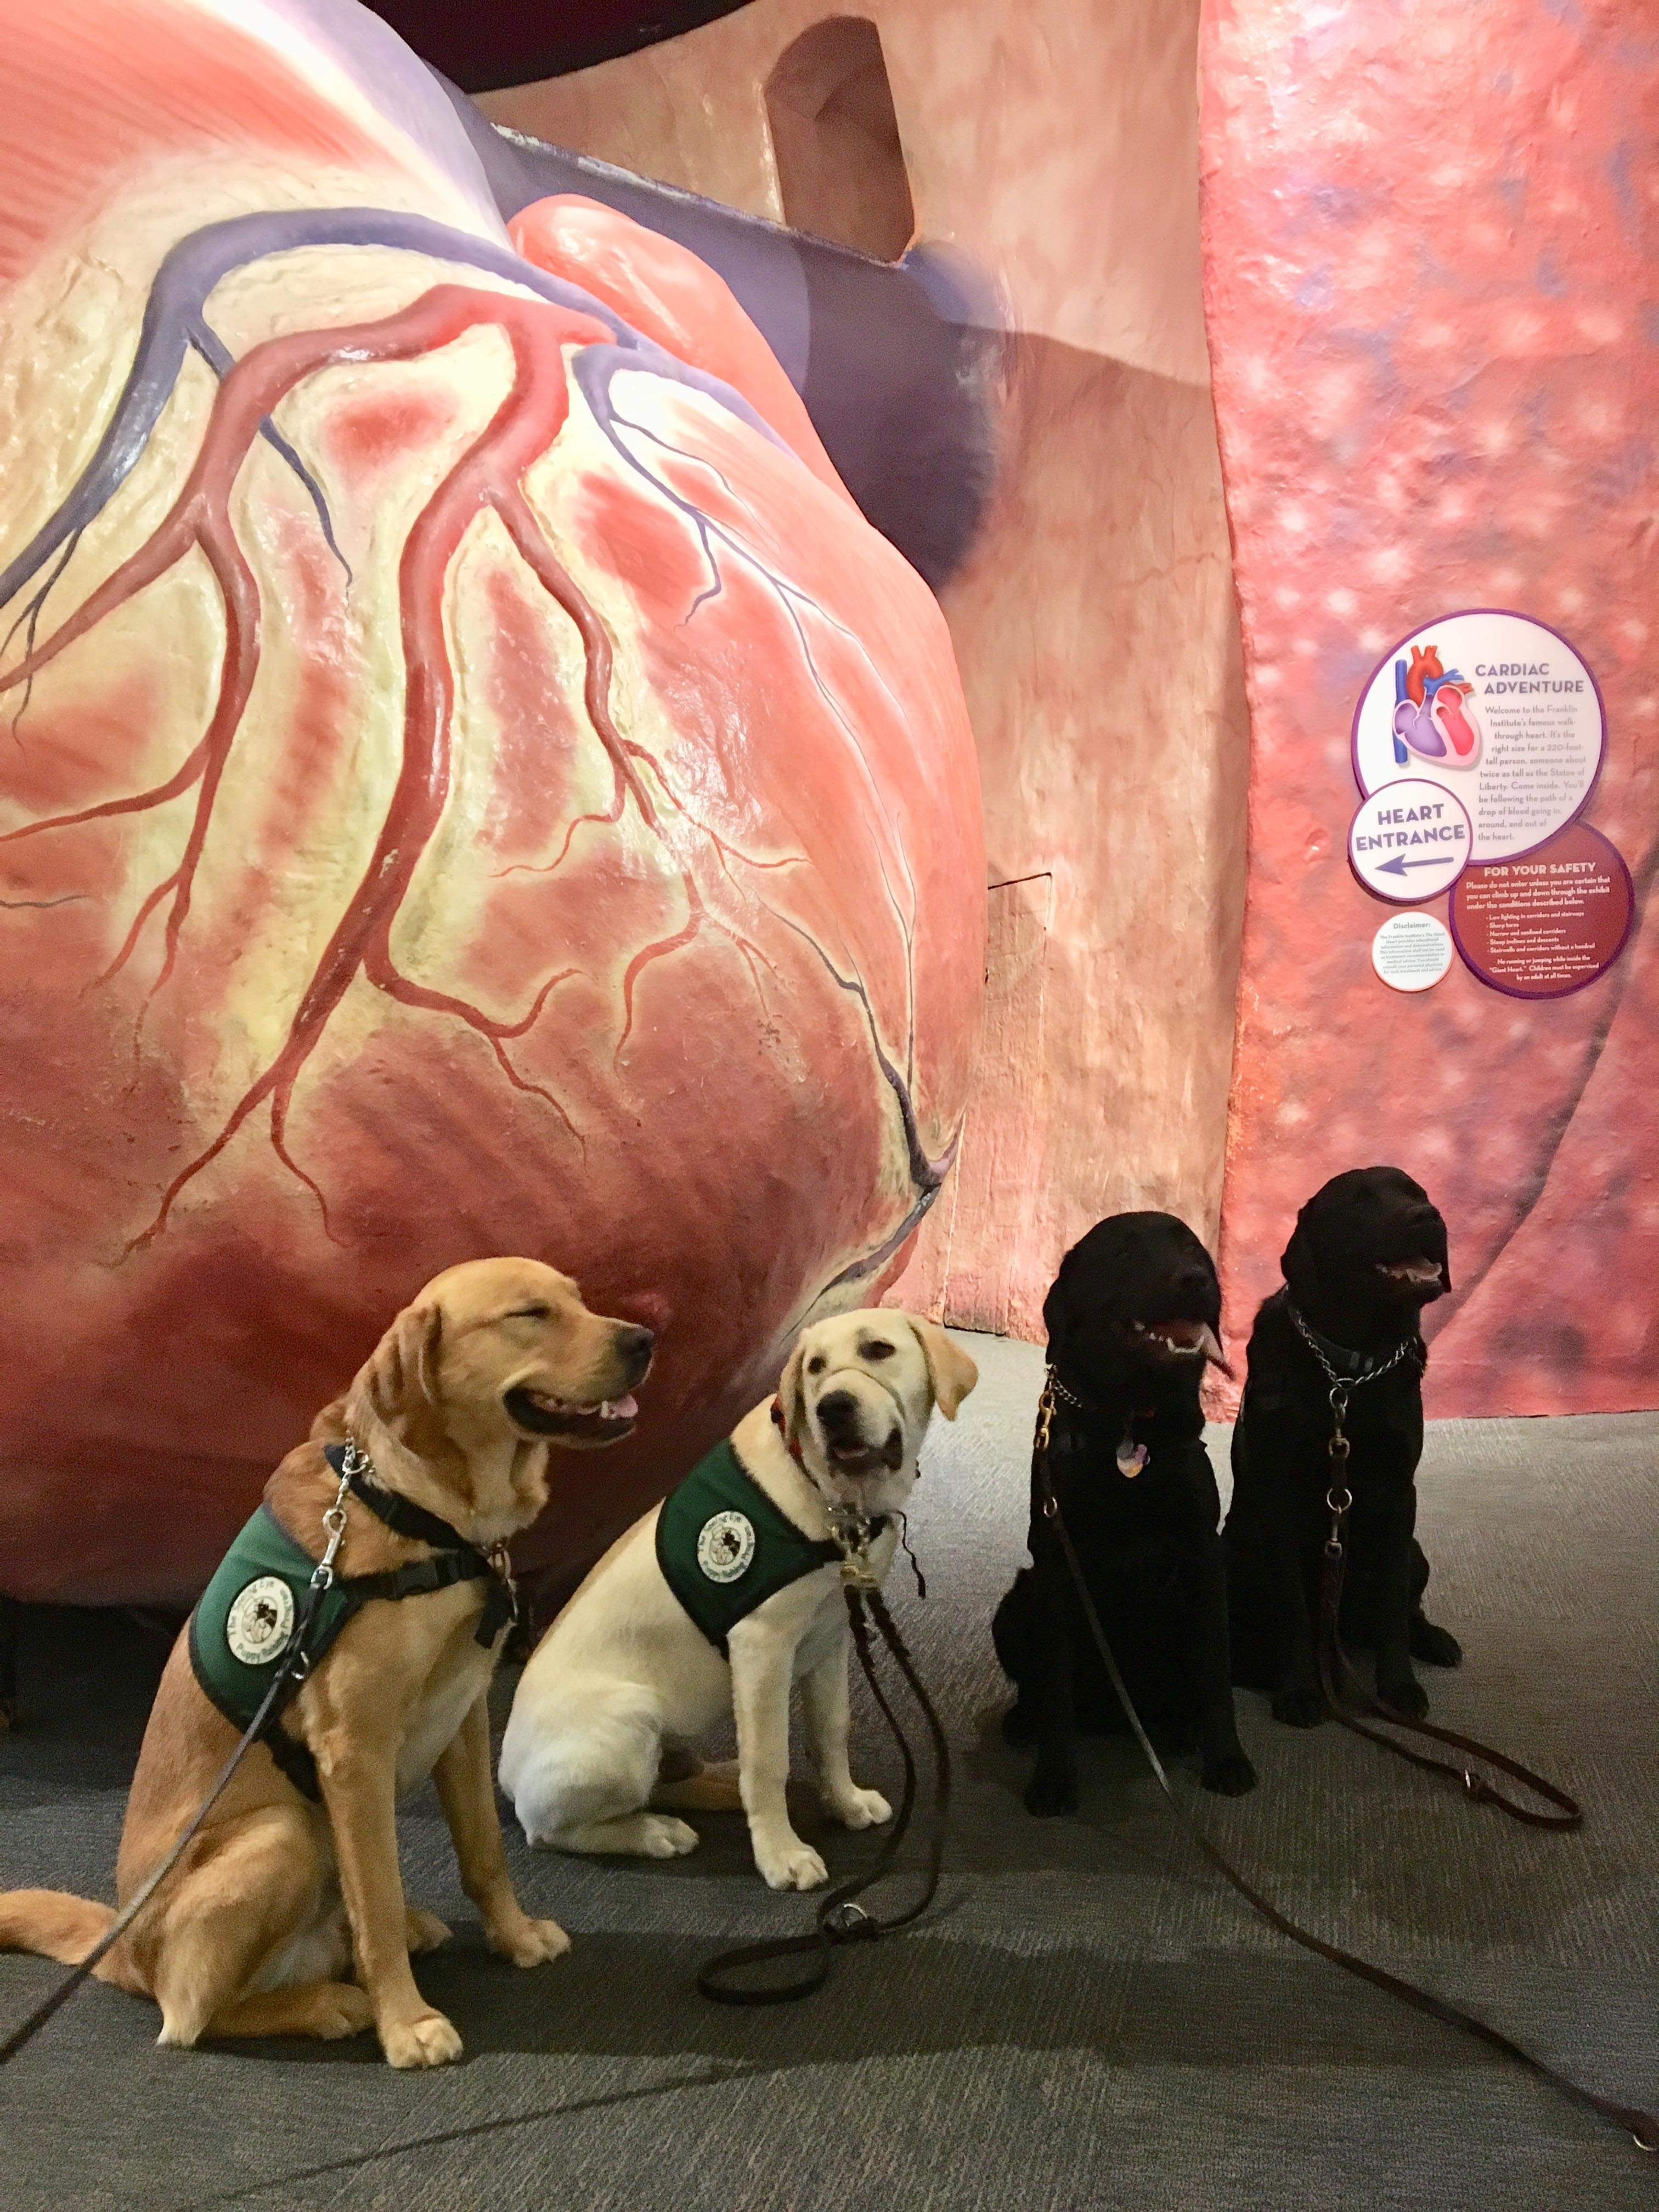 Dogs sitting in front of the Giant Heart